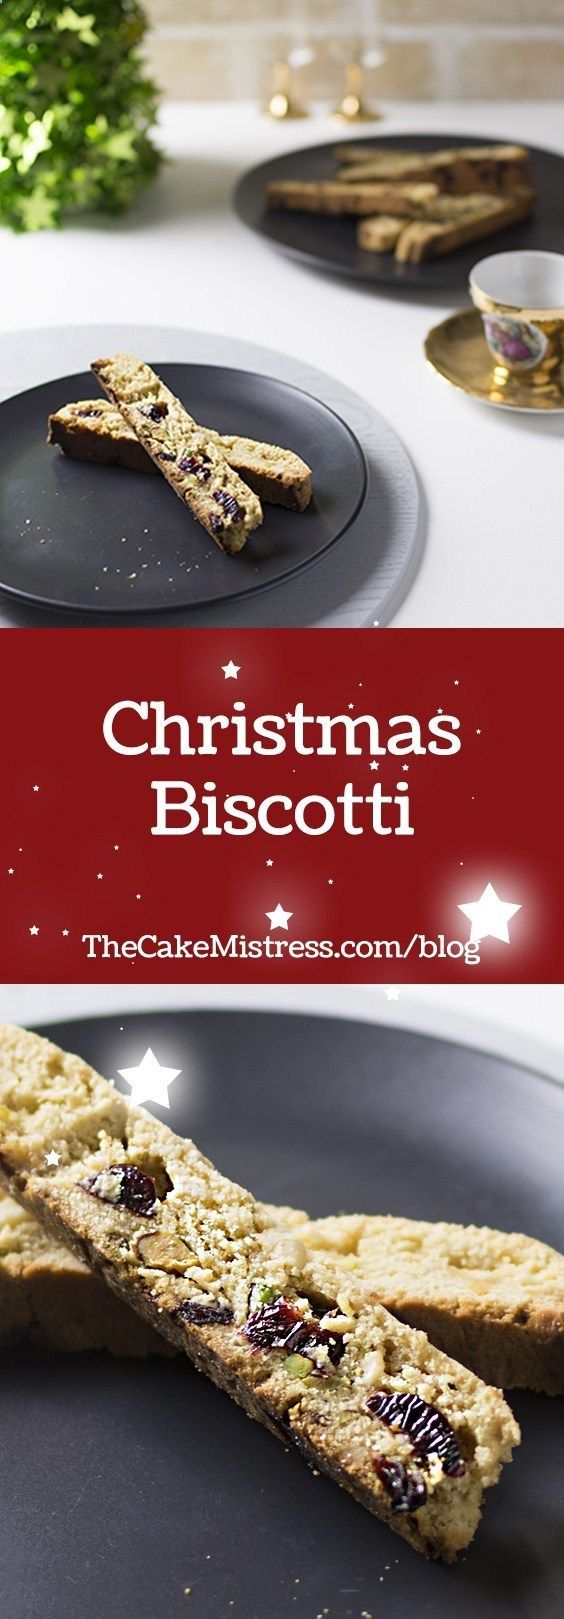 Learn how to make Christmas Biscotti, with festive flavours of cranberry, pistachio, almond and white chocolate #baking #recipe #Christmas #biscotti